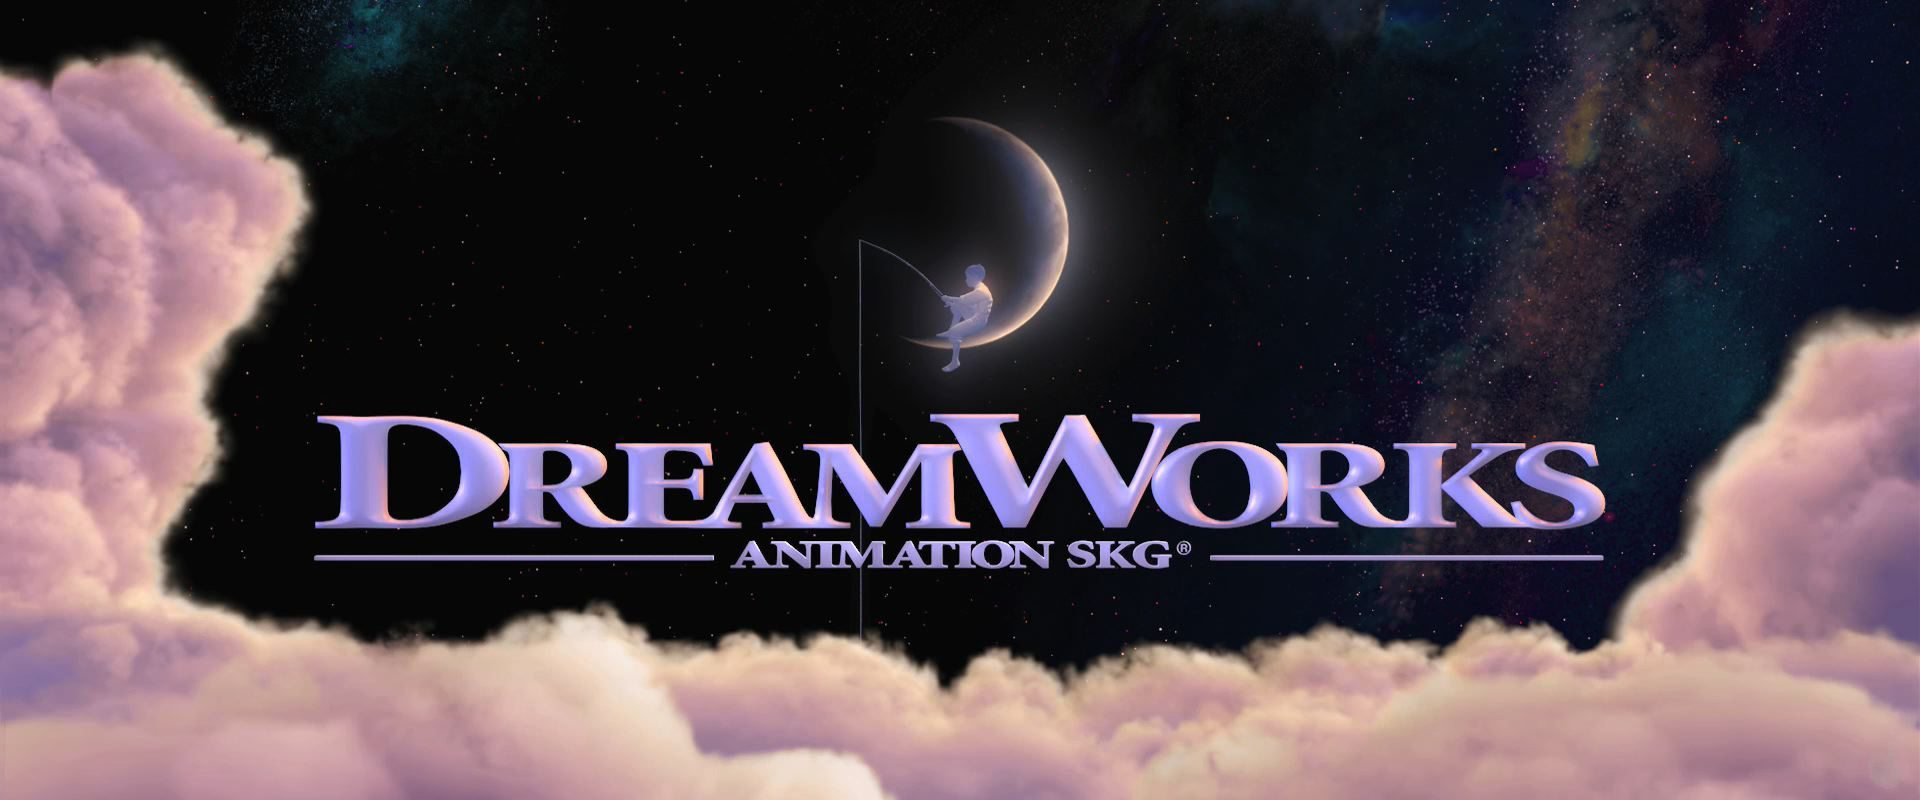 Animation Studios: Dreamworks-animation-studios